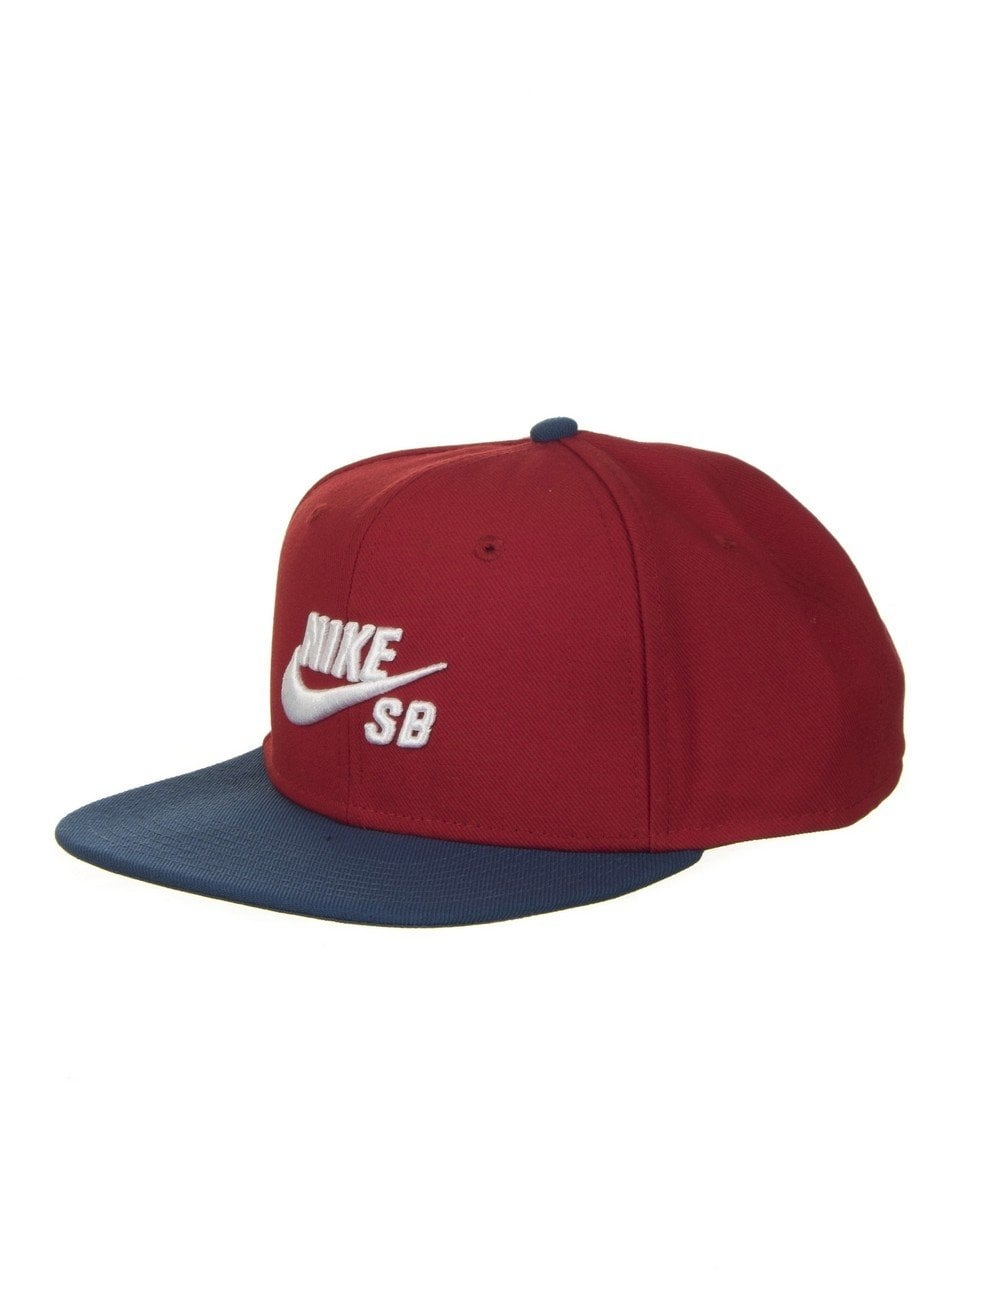 Nike SB Icon Pro Snapback Hat - Gym Red White - Accessories from Fat ... 46af2d6cb95